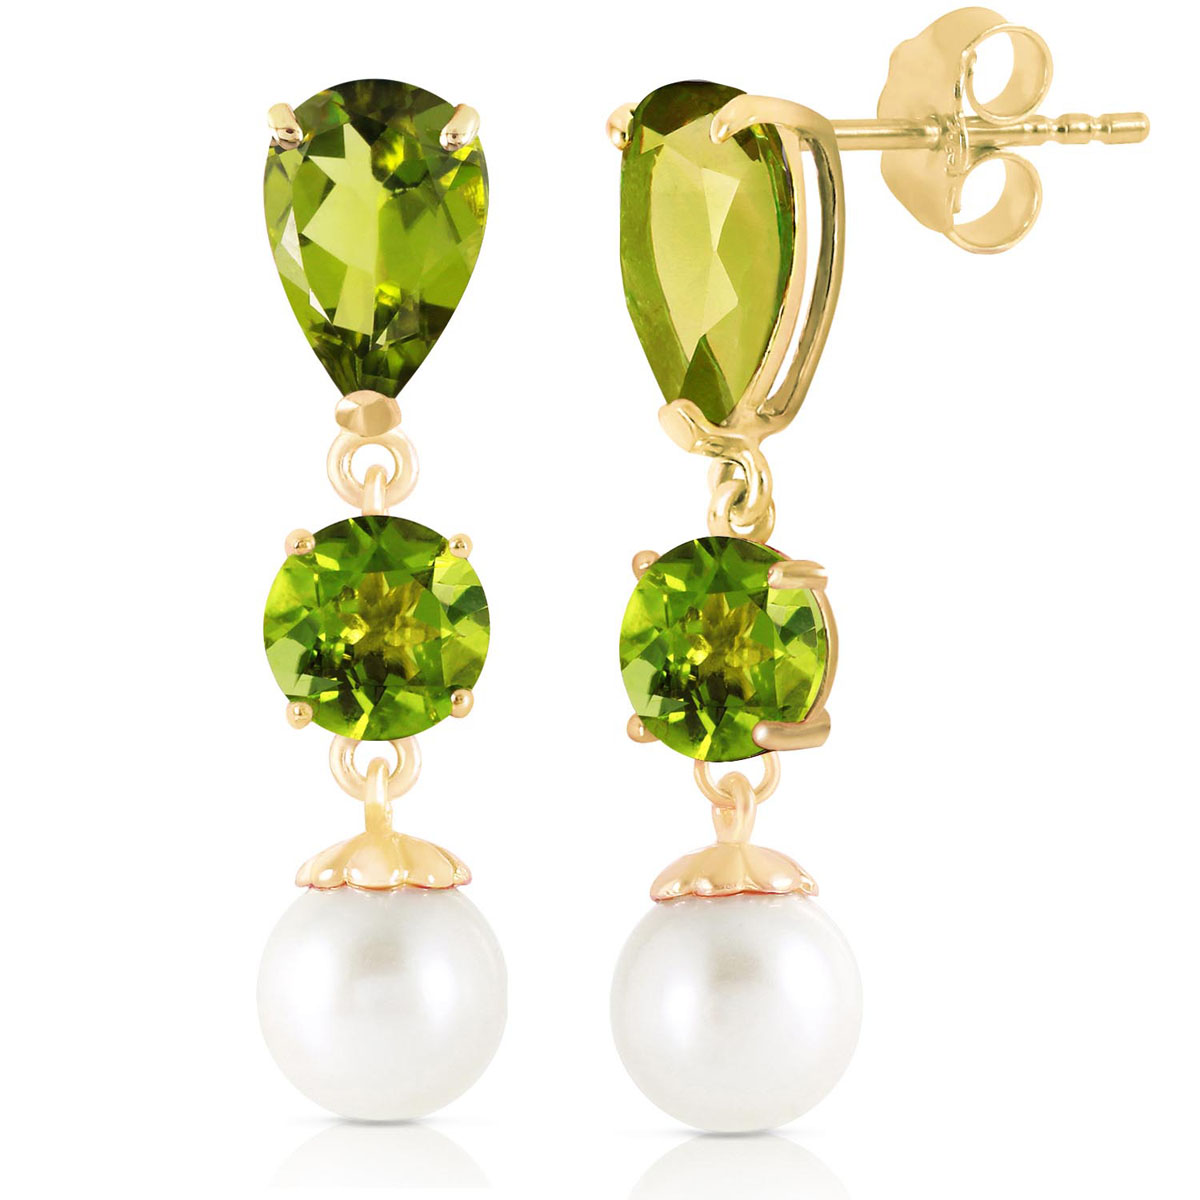 Peridot & Pearl Droplet Earrings in 9ct Gold